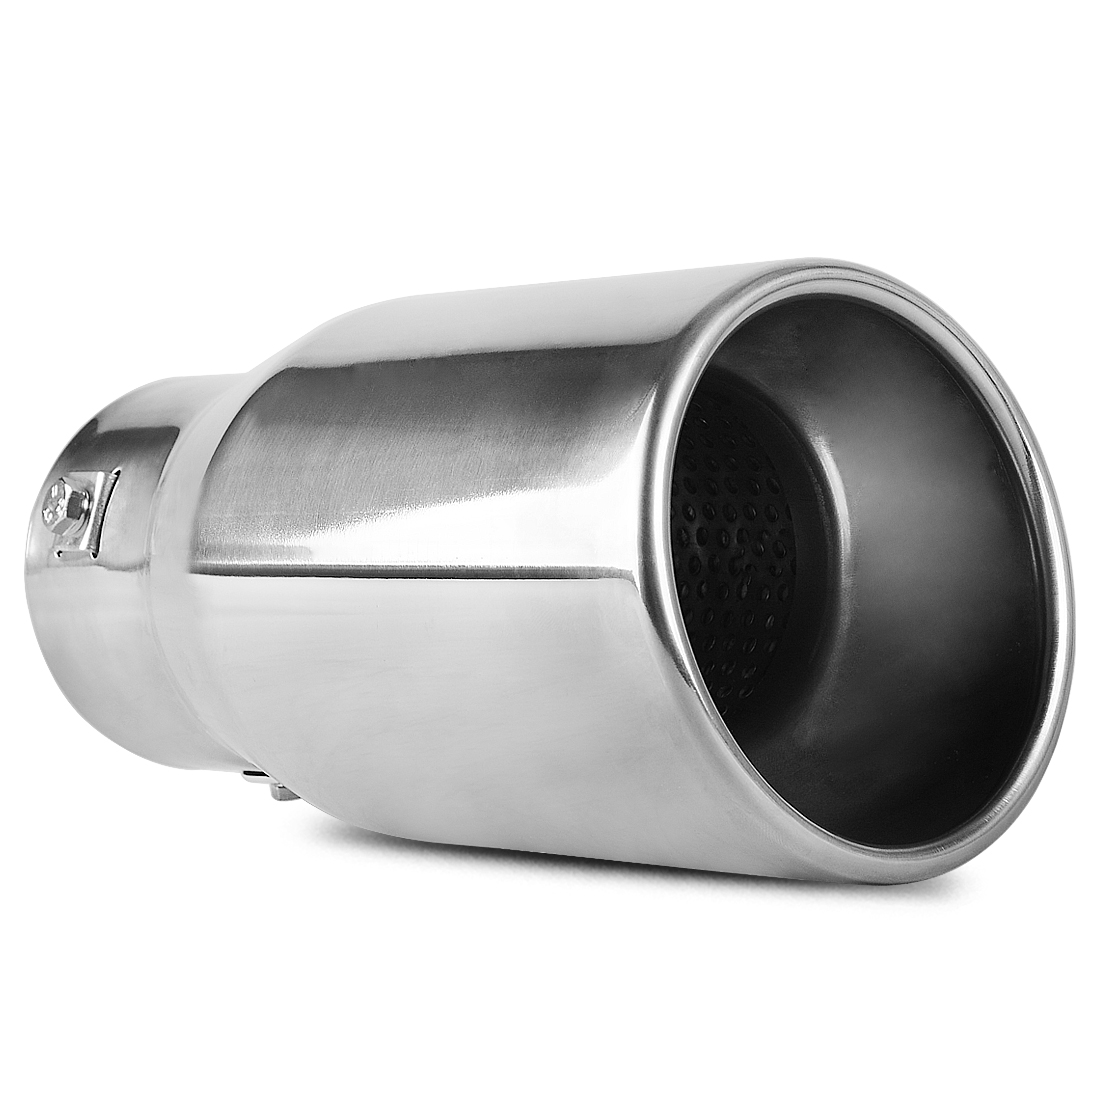 yitamotor chrome exhaust tip 3 in x 4 out x 9 l bolt on polished stainless steel tailpipe walmart com